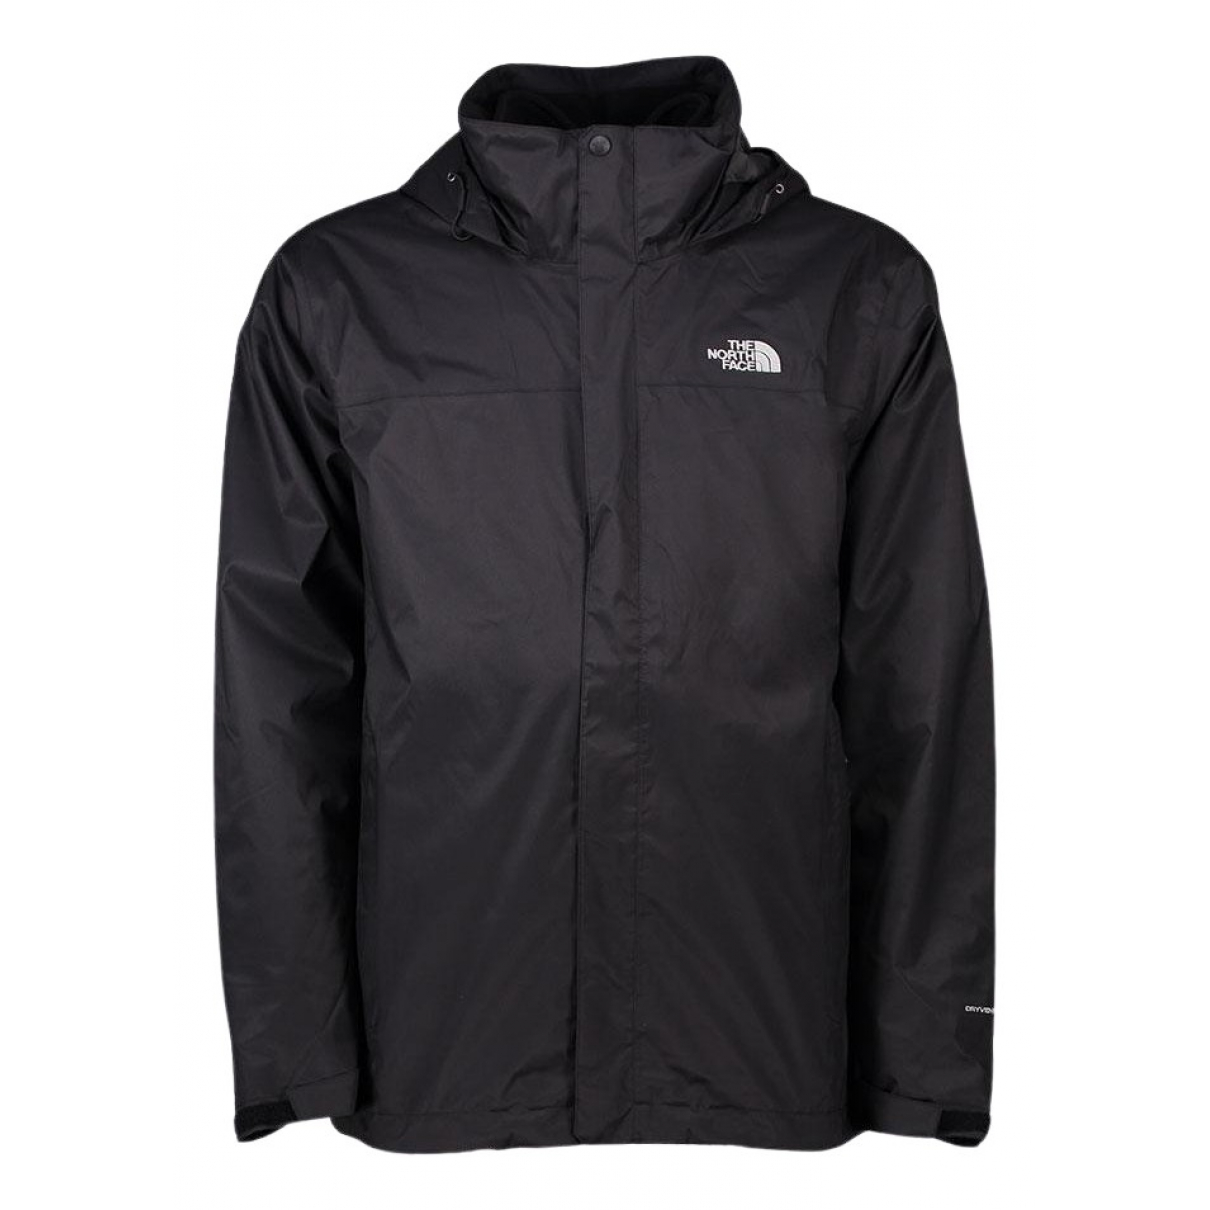 The North Face \N Jacke in  Schwarz Polyester